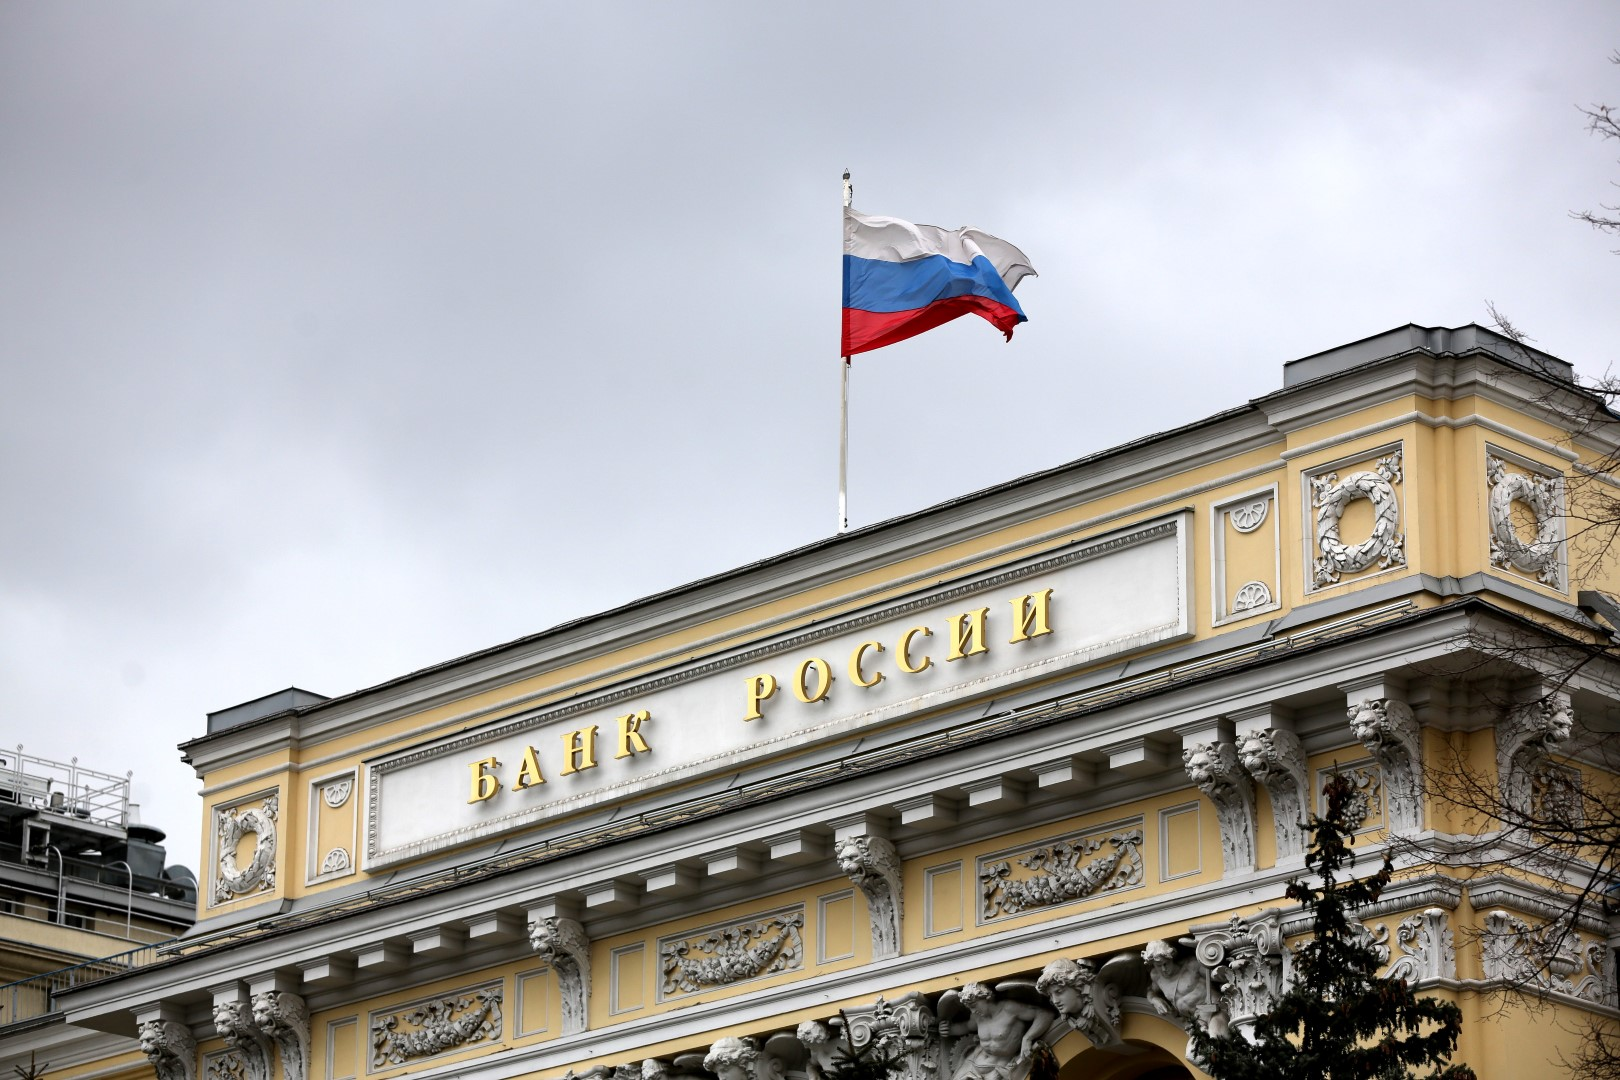 """The flag of the Russian Federation flies above the headquarters of the Russian central bank, also known as Bank Rossii, in Moscow, Russia, on Friday, March 18, 2016. Russia's central bank kept its benchmark interest rate unchanged for a fifth meeting amid risks to inflation, warning that its """"moderately tight"""" monetary policy may last longer than previously planned. Photographer: Andrey Rudakov/Bloomberg"""